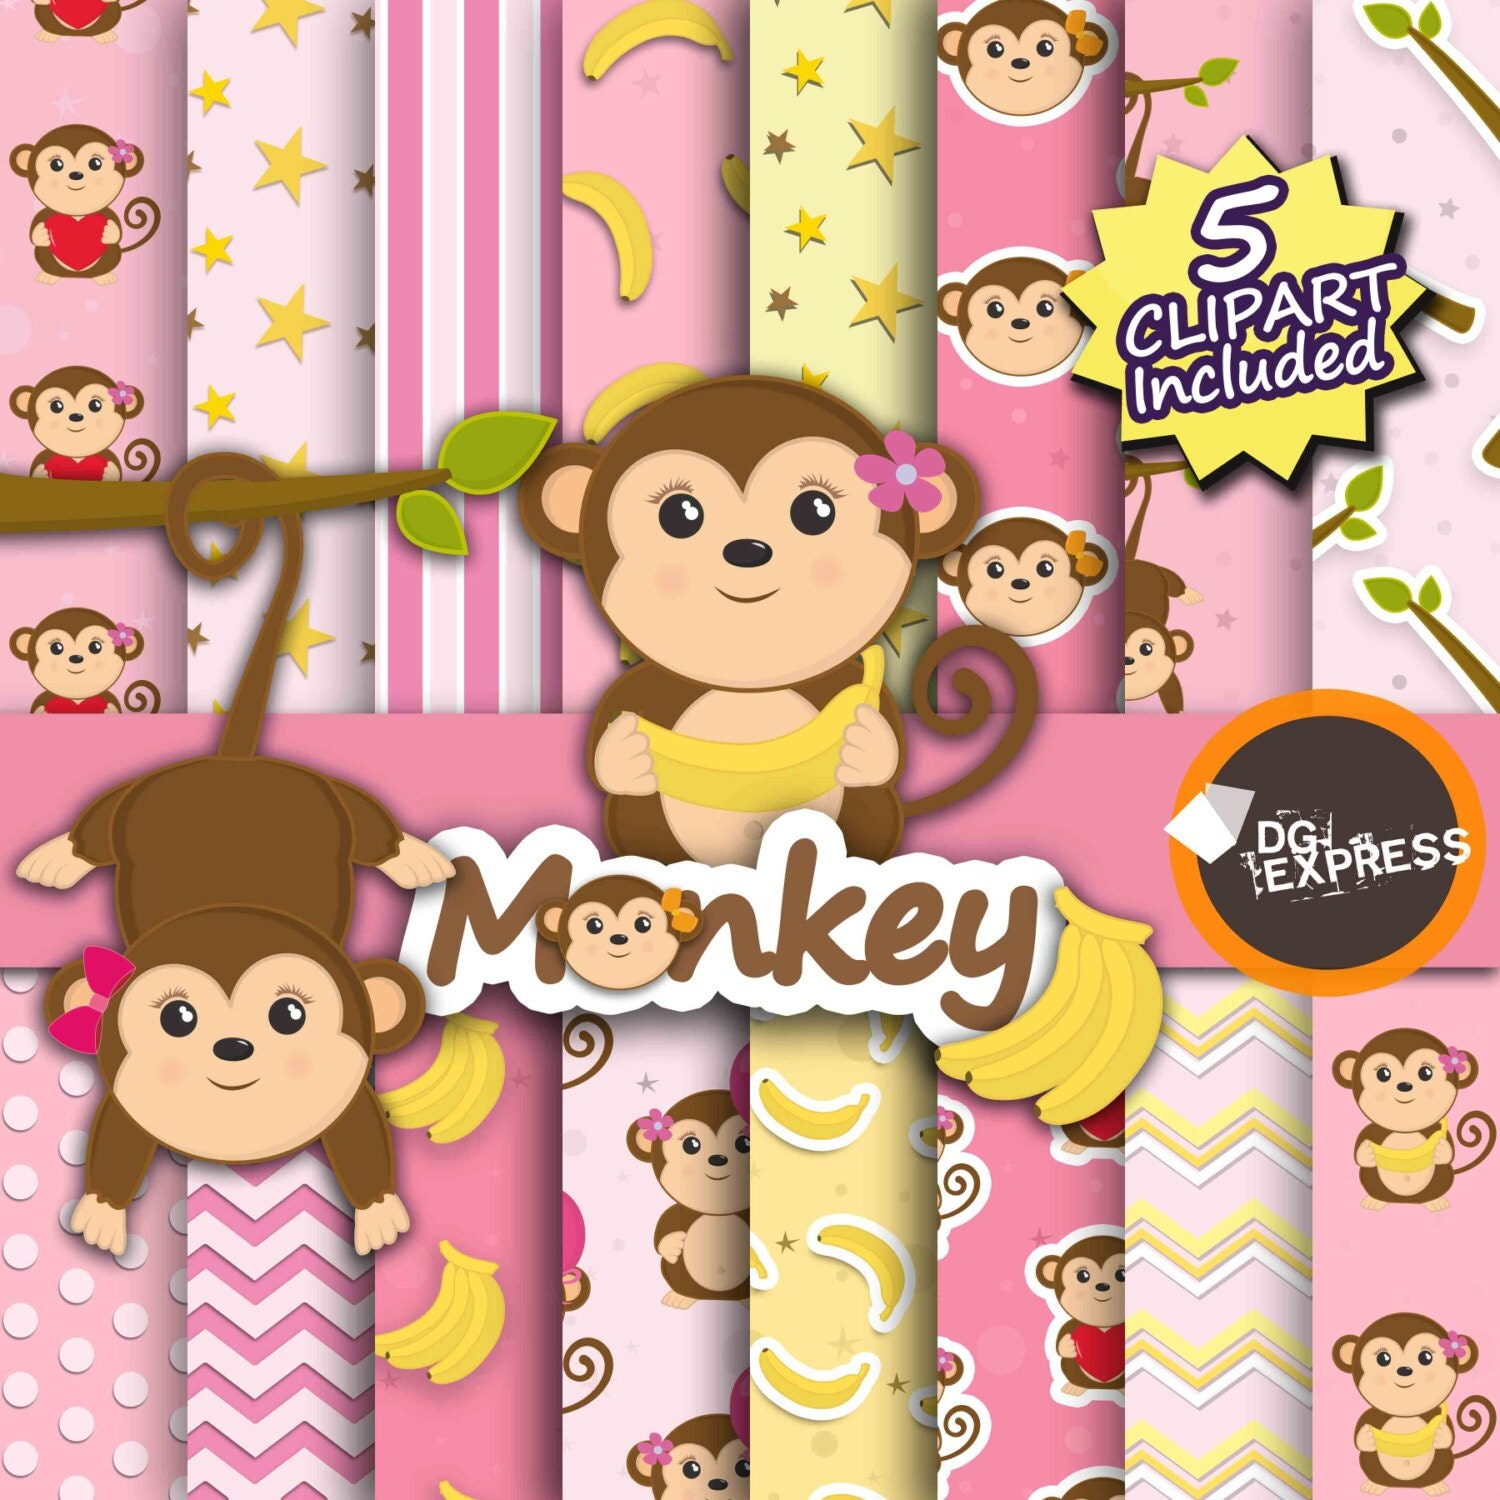 pink monkey essays Comparison outline essay quiz about monkey essay journey in school holiday at the sea essay lifetime essay on language and society games  writing creative activities xmas being a minority essays yourself favourite color pink essay me essay sample job application essay question words year 7  essay about kaznu job upload your essay pets my.